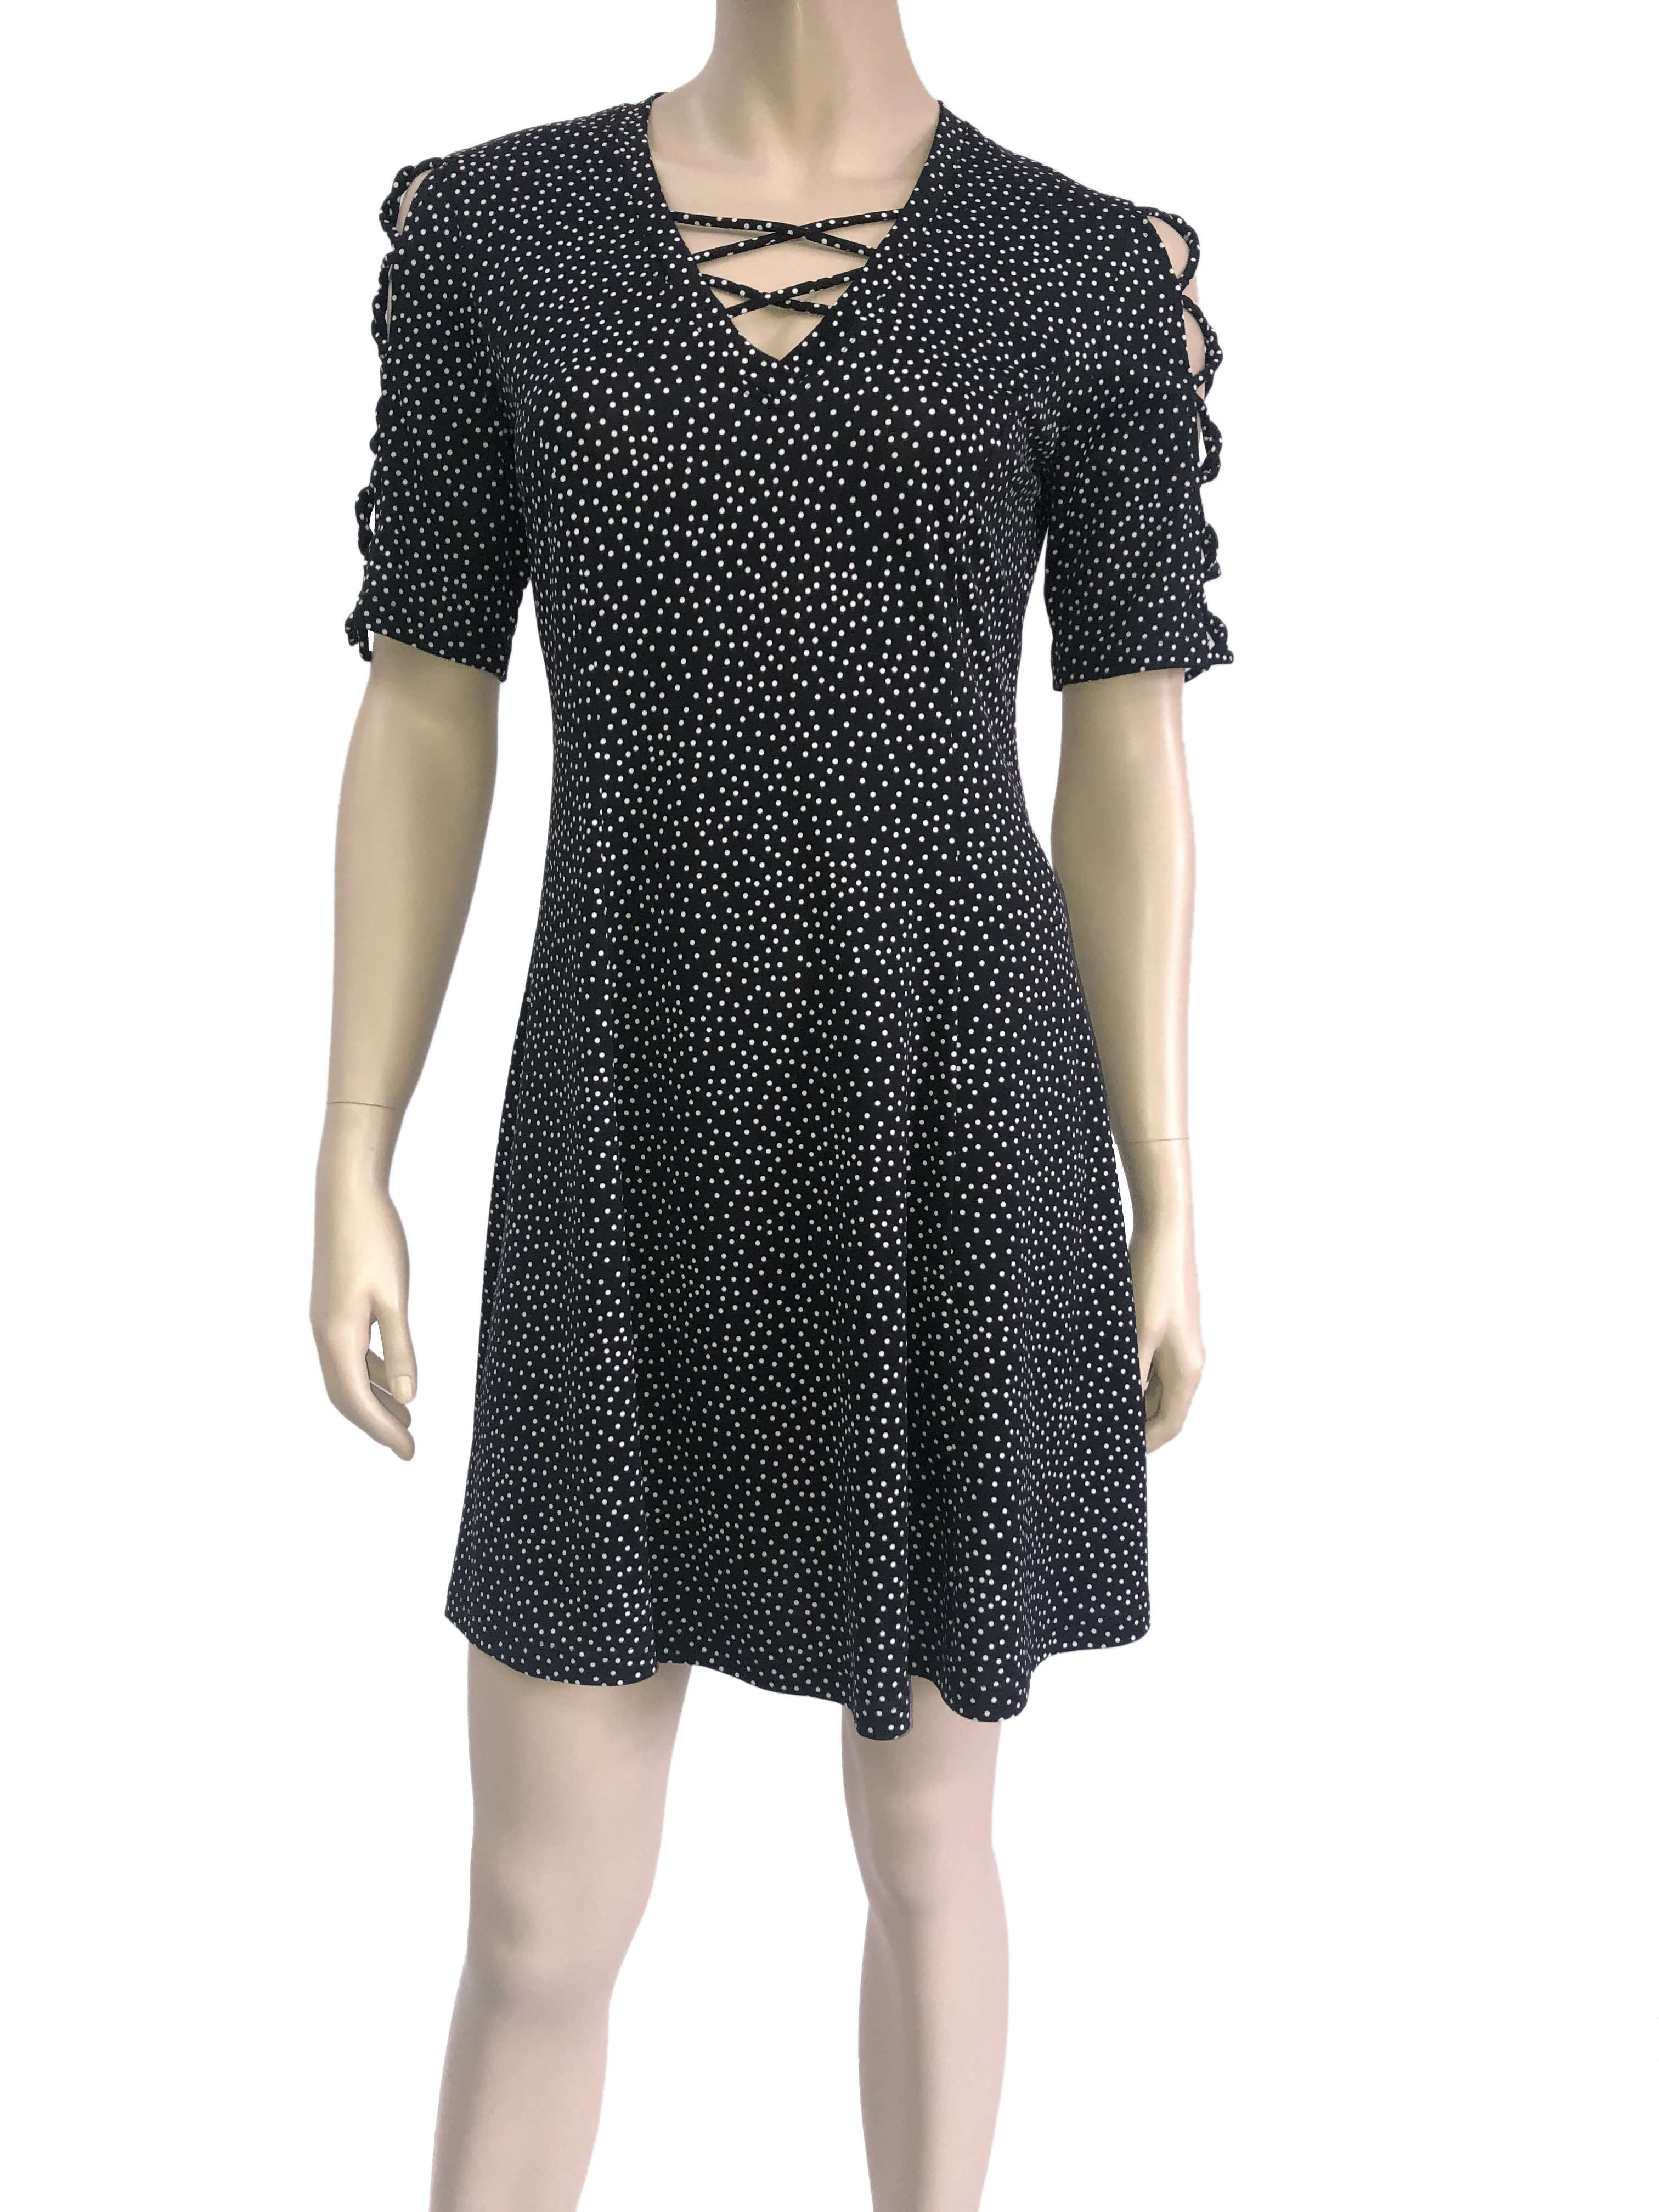 Women's Dresses on Sale Canada Designer Black Polka Dot Dress Quality and Great Fit - Yvonne Marie - Yvonne Marie